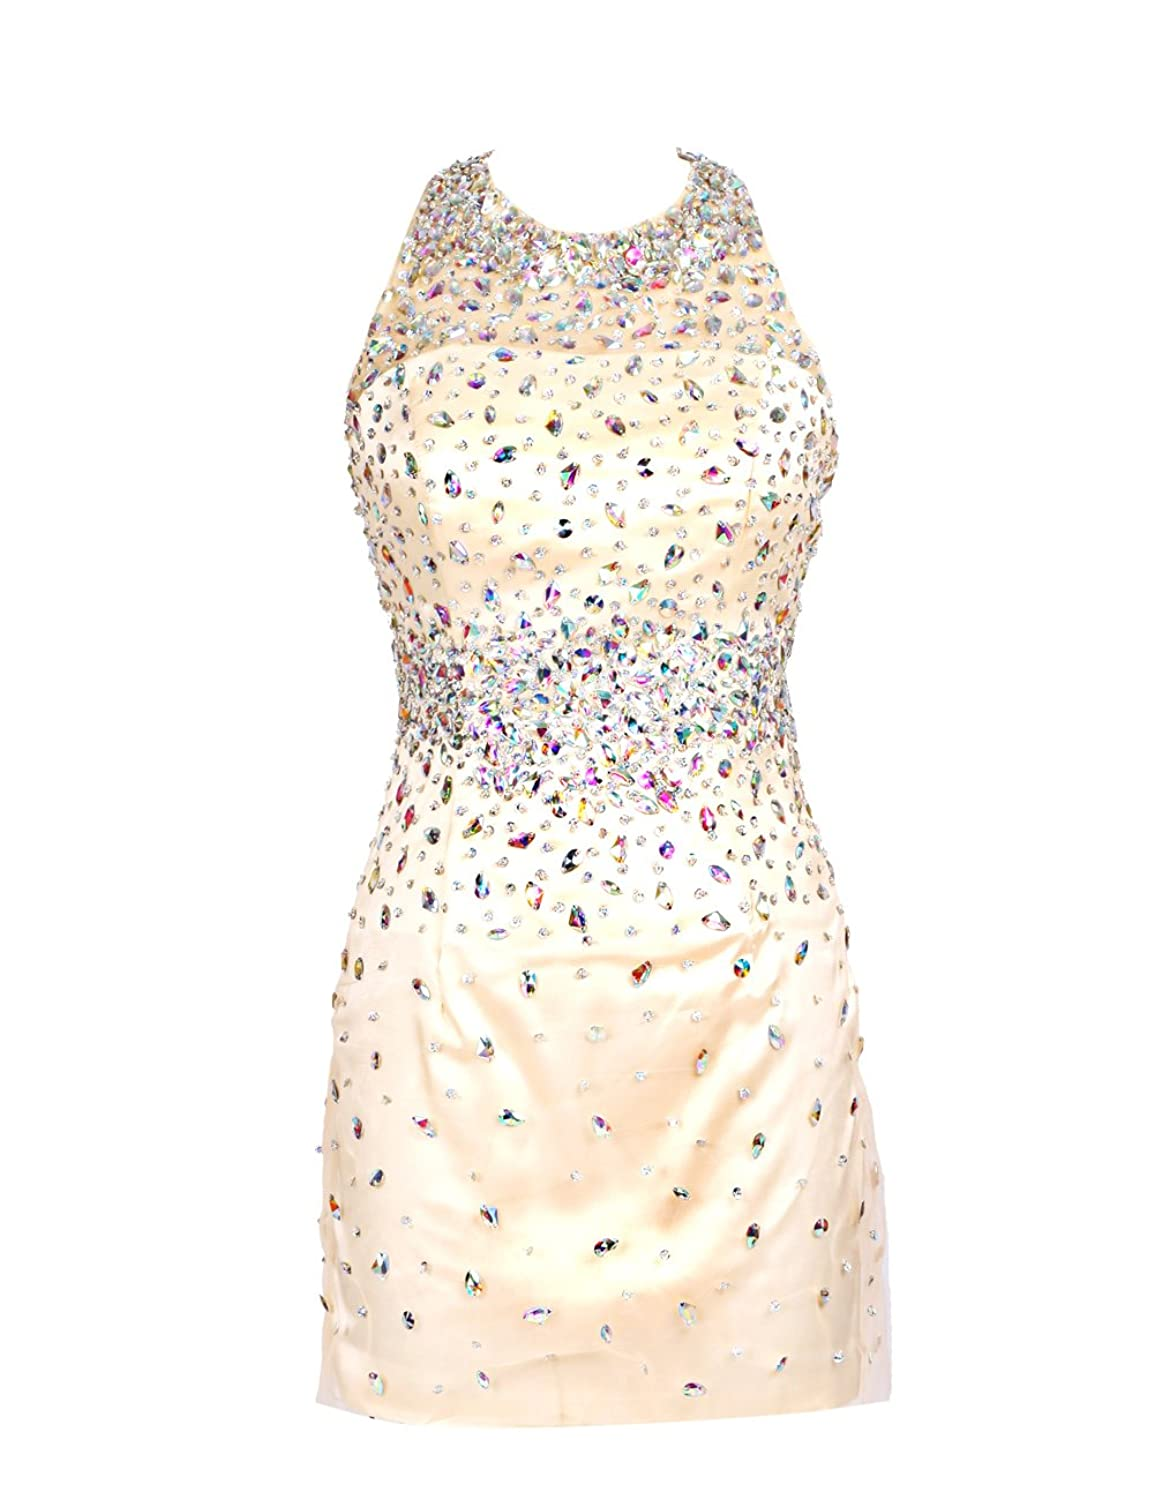 Dressystar Short Halter Bridesmaid Dresses Beadings Size 28W Champagne